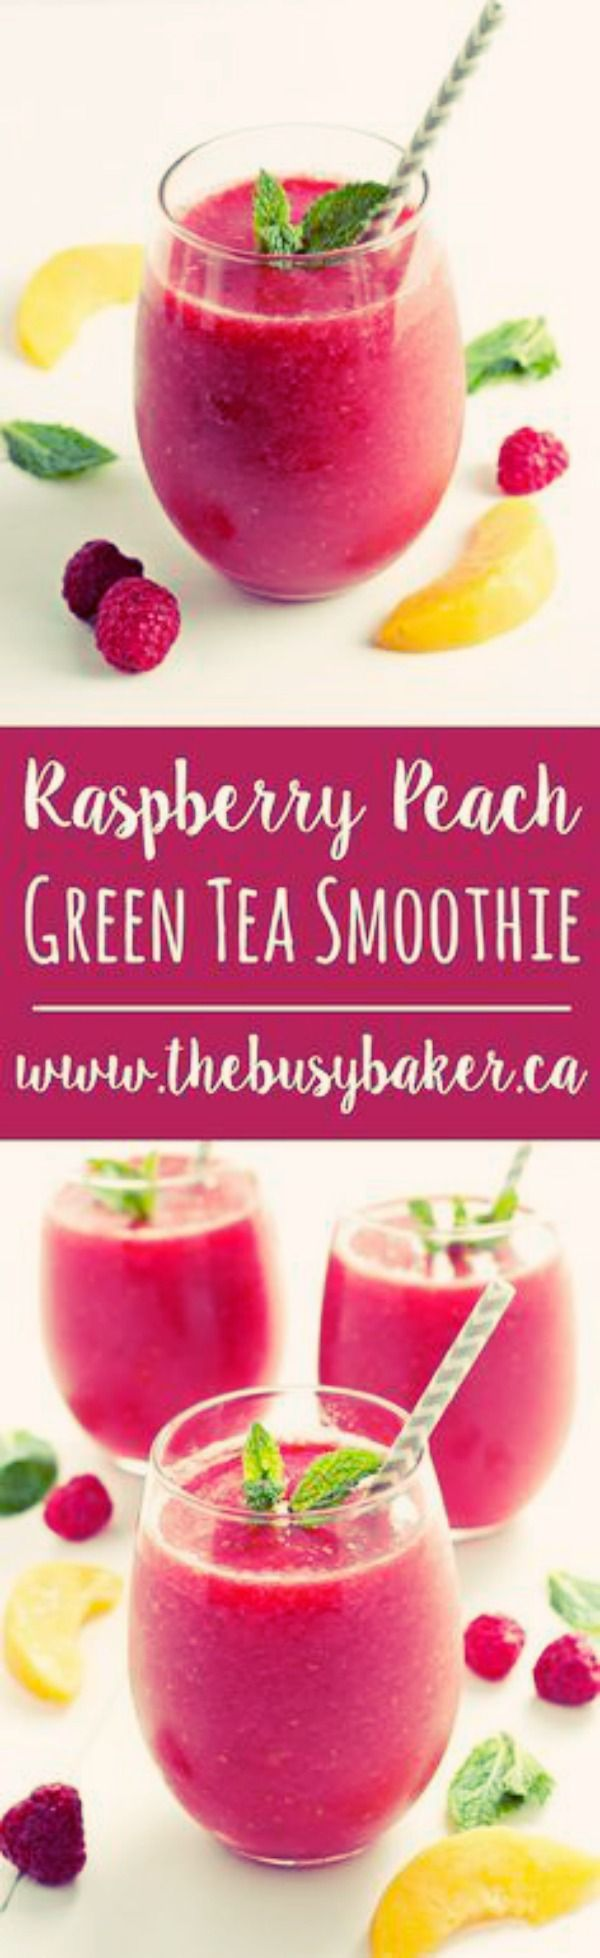 Raspberry Peach Green Tea Smoothie | This Raspberry Peach Green Tea Smoothie is my favourite summer drink! It's a refreshing low-calorie treat that's naturally sweetened only with fruit, with a delicious hint of iced green tea! via: @busybakerblog